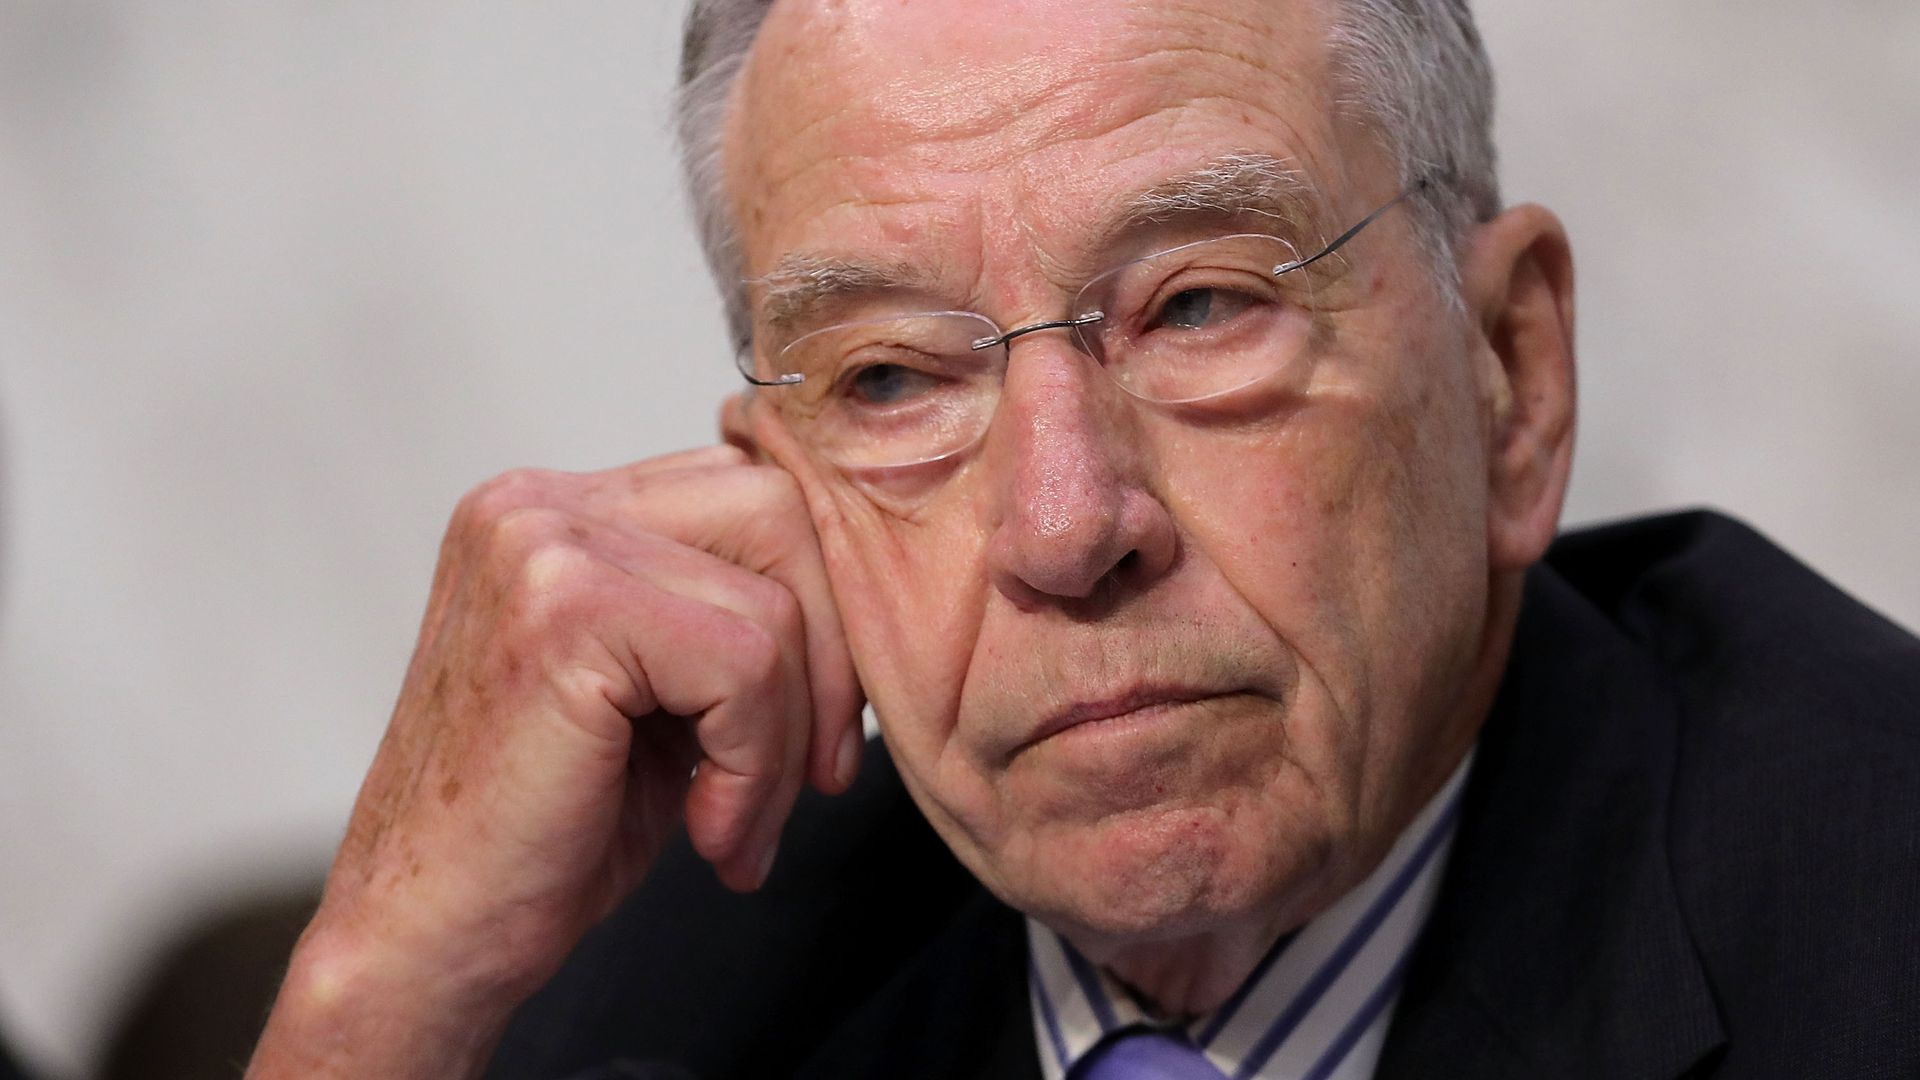 Chuck Grassley rests his head on his hand while in thought